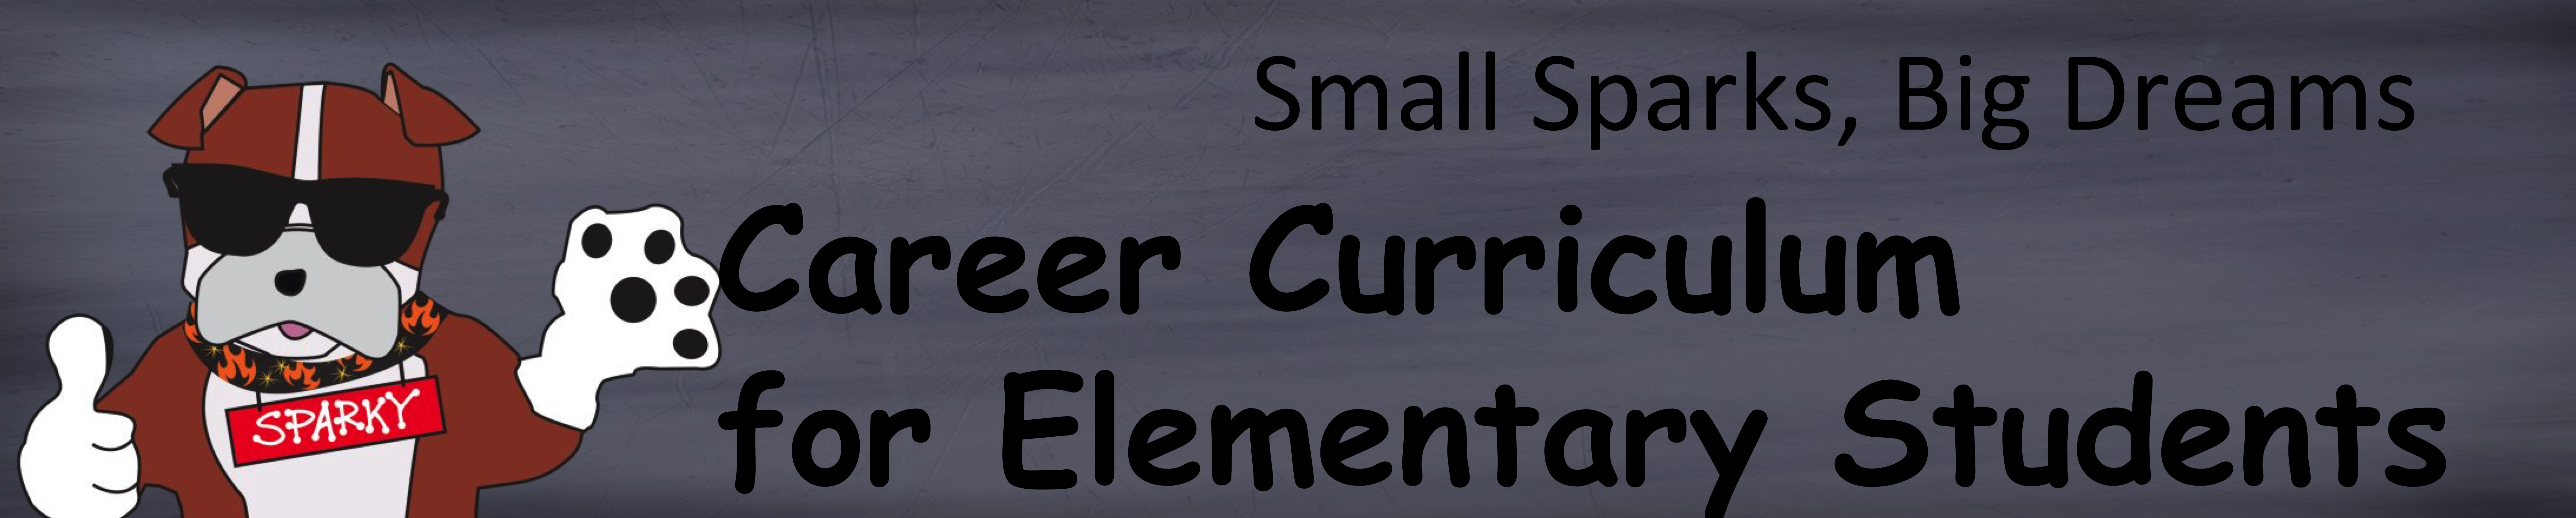 Elementary Career Curriculum:  Small Sparks, Big Dreams